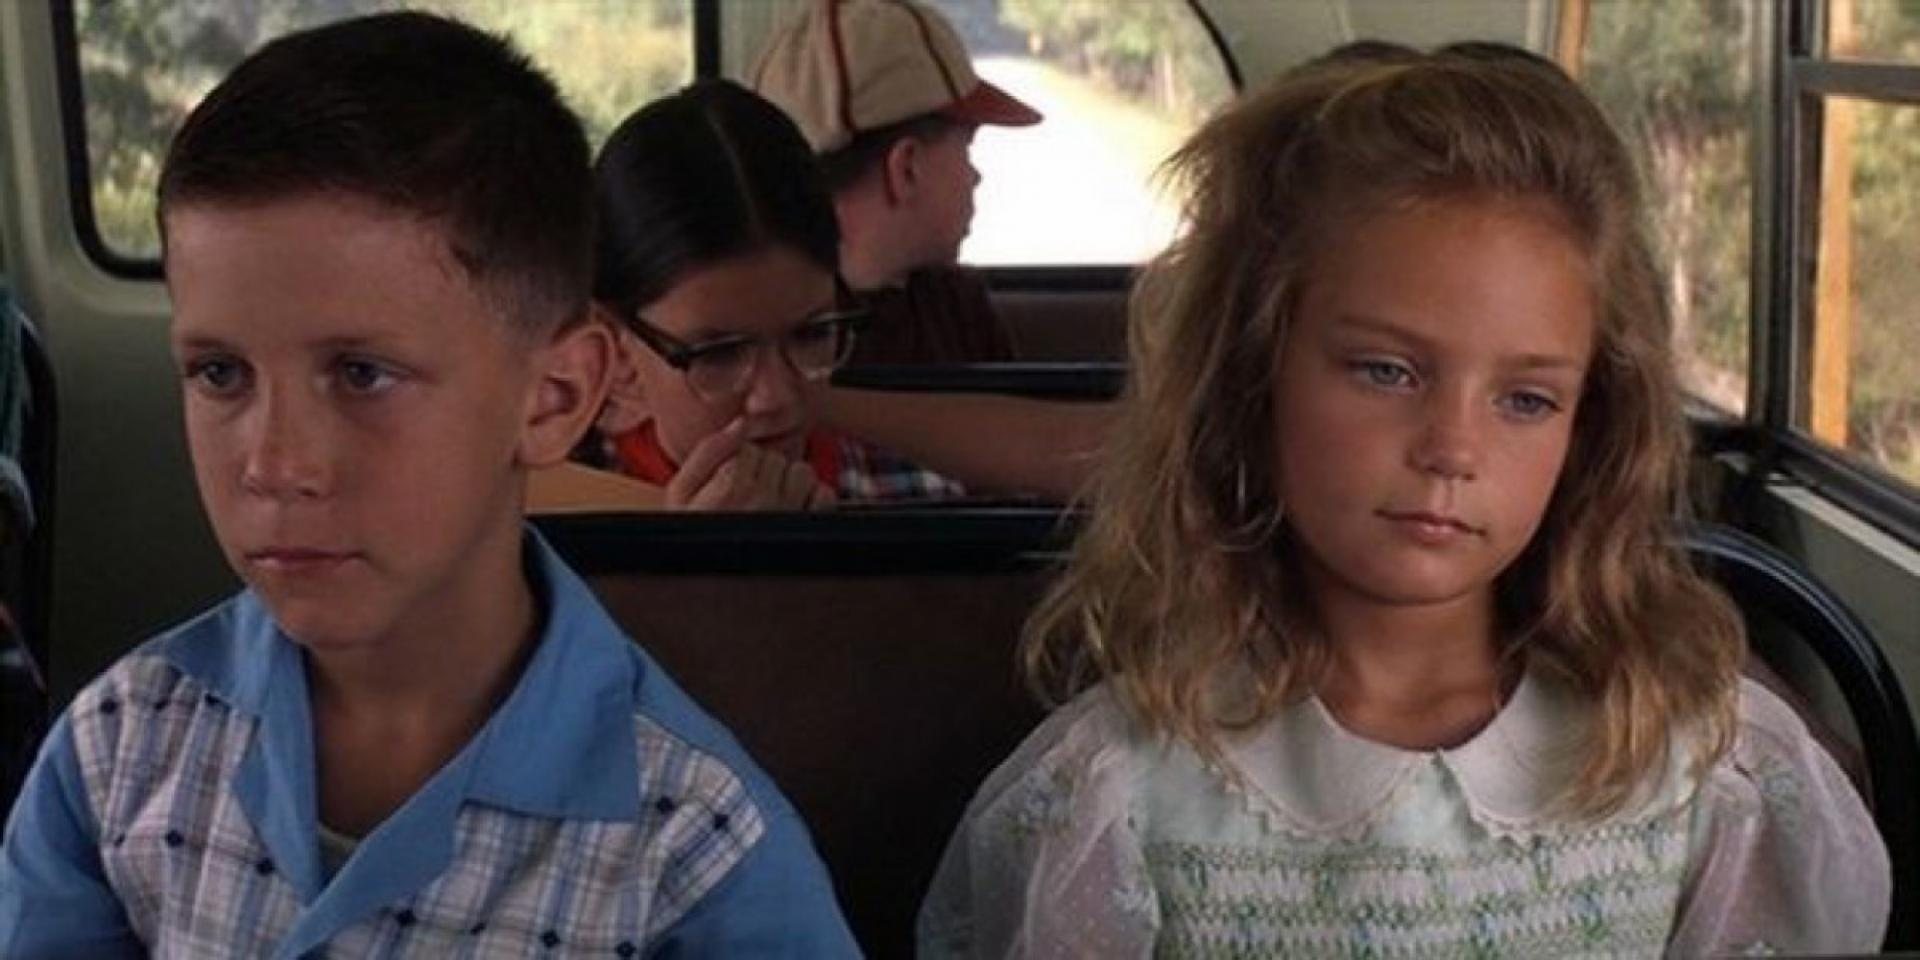 psychological analysis of jenny forrest gump Gump goes through life as a bit of an inept bumbler, oblivious to social signals and norms, but possessed of an ability to focus in on technical details and follow clear instructions with laser-like precision.